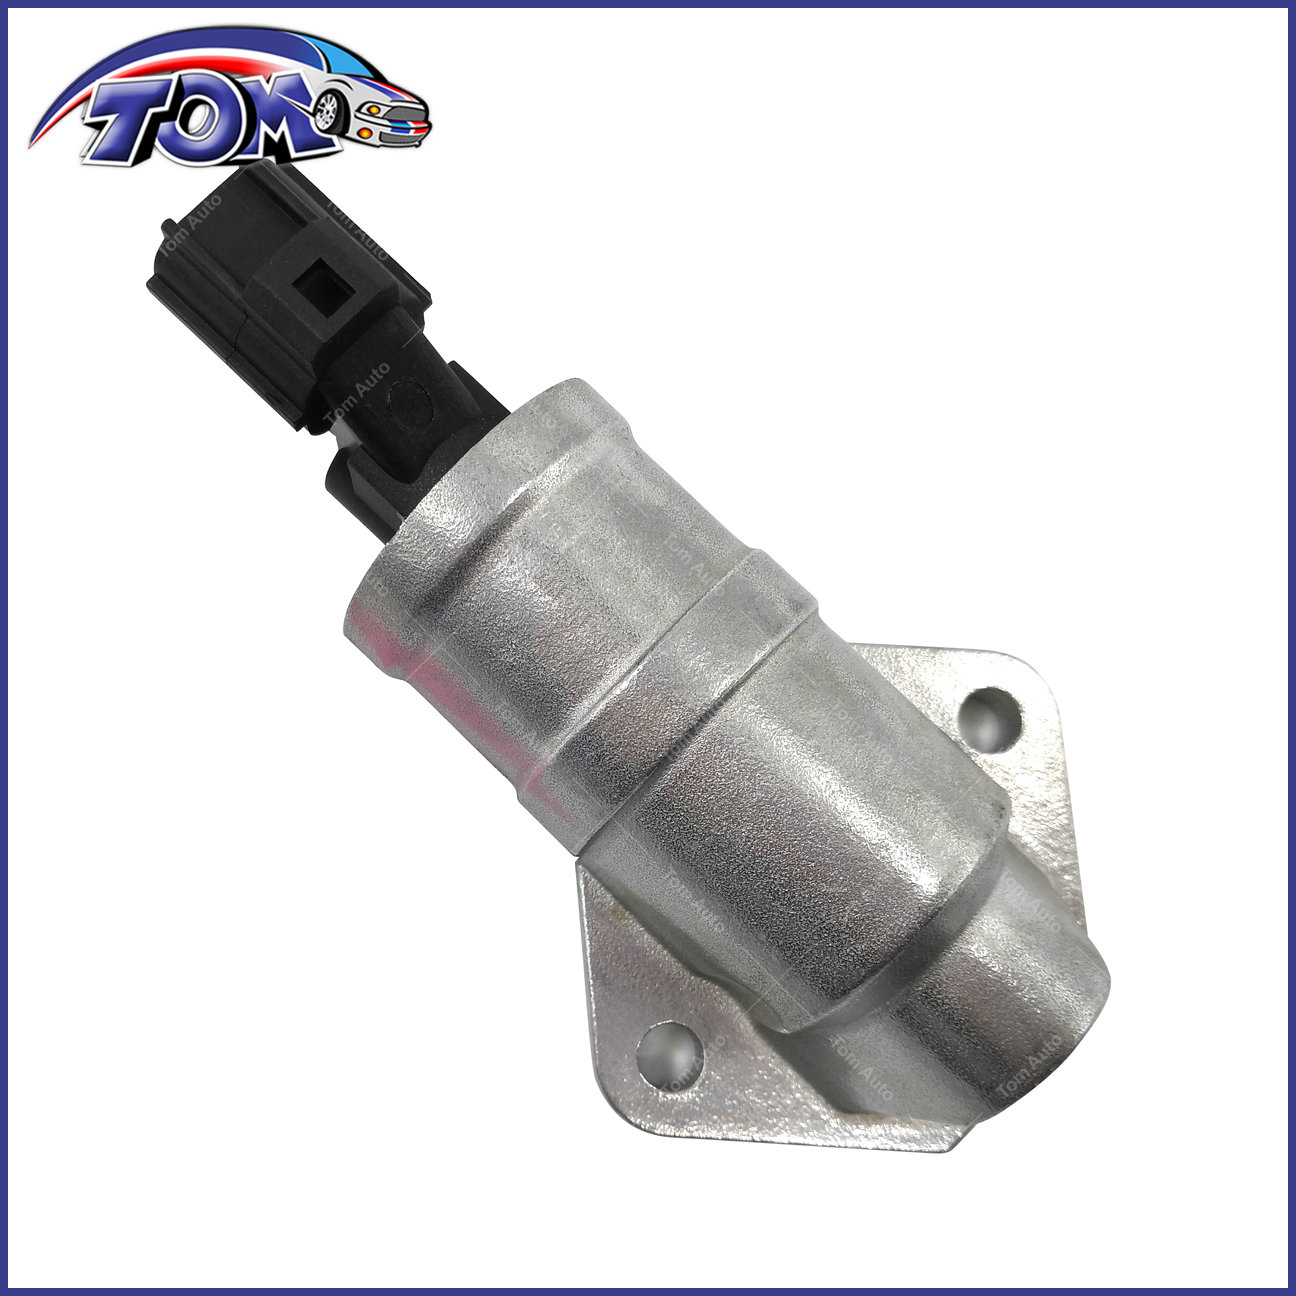 Details about Fuel Injection Idle Air Control Valve For Mazda Tribute Ford  Escape AC506